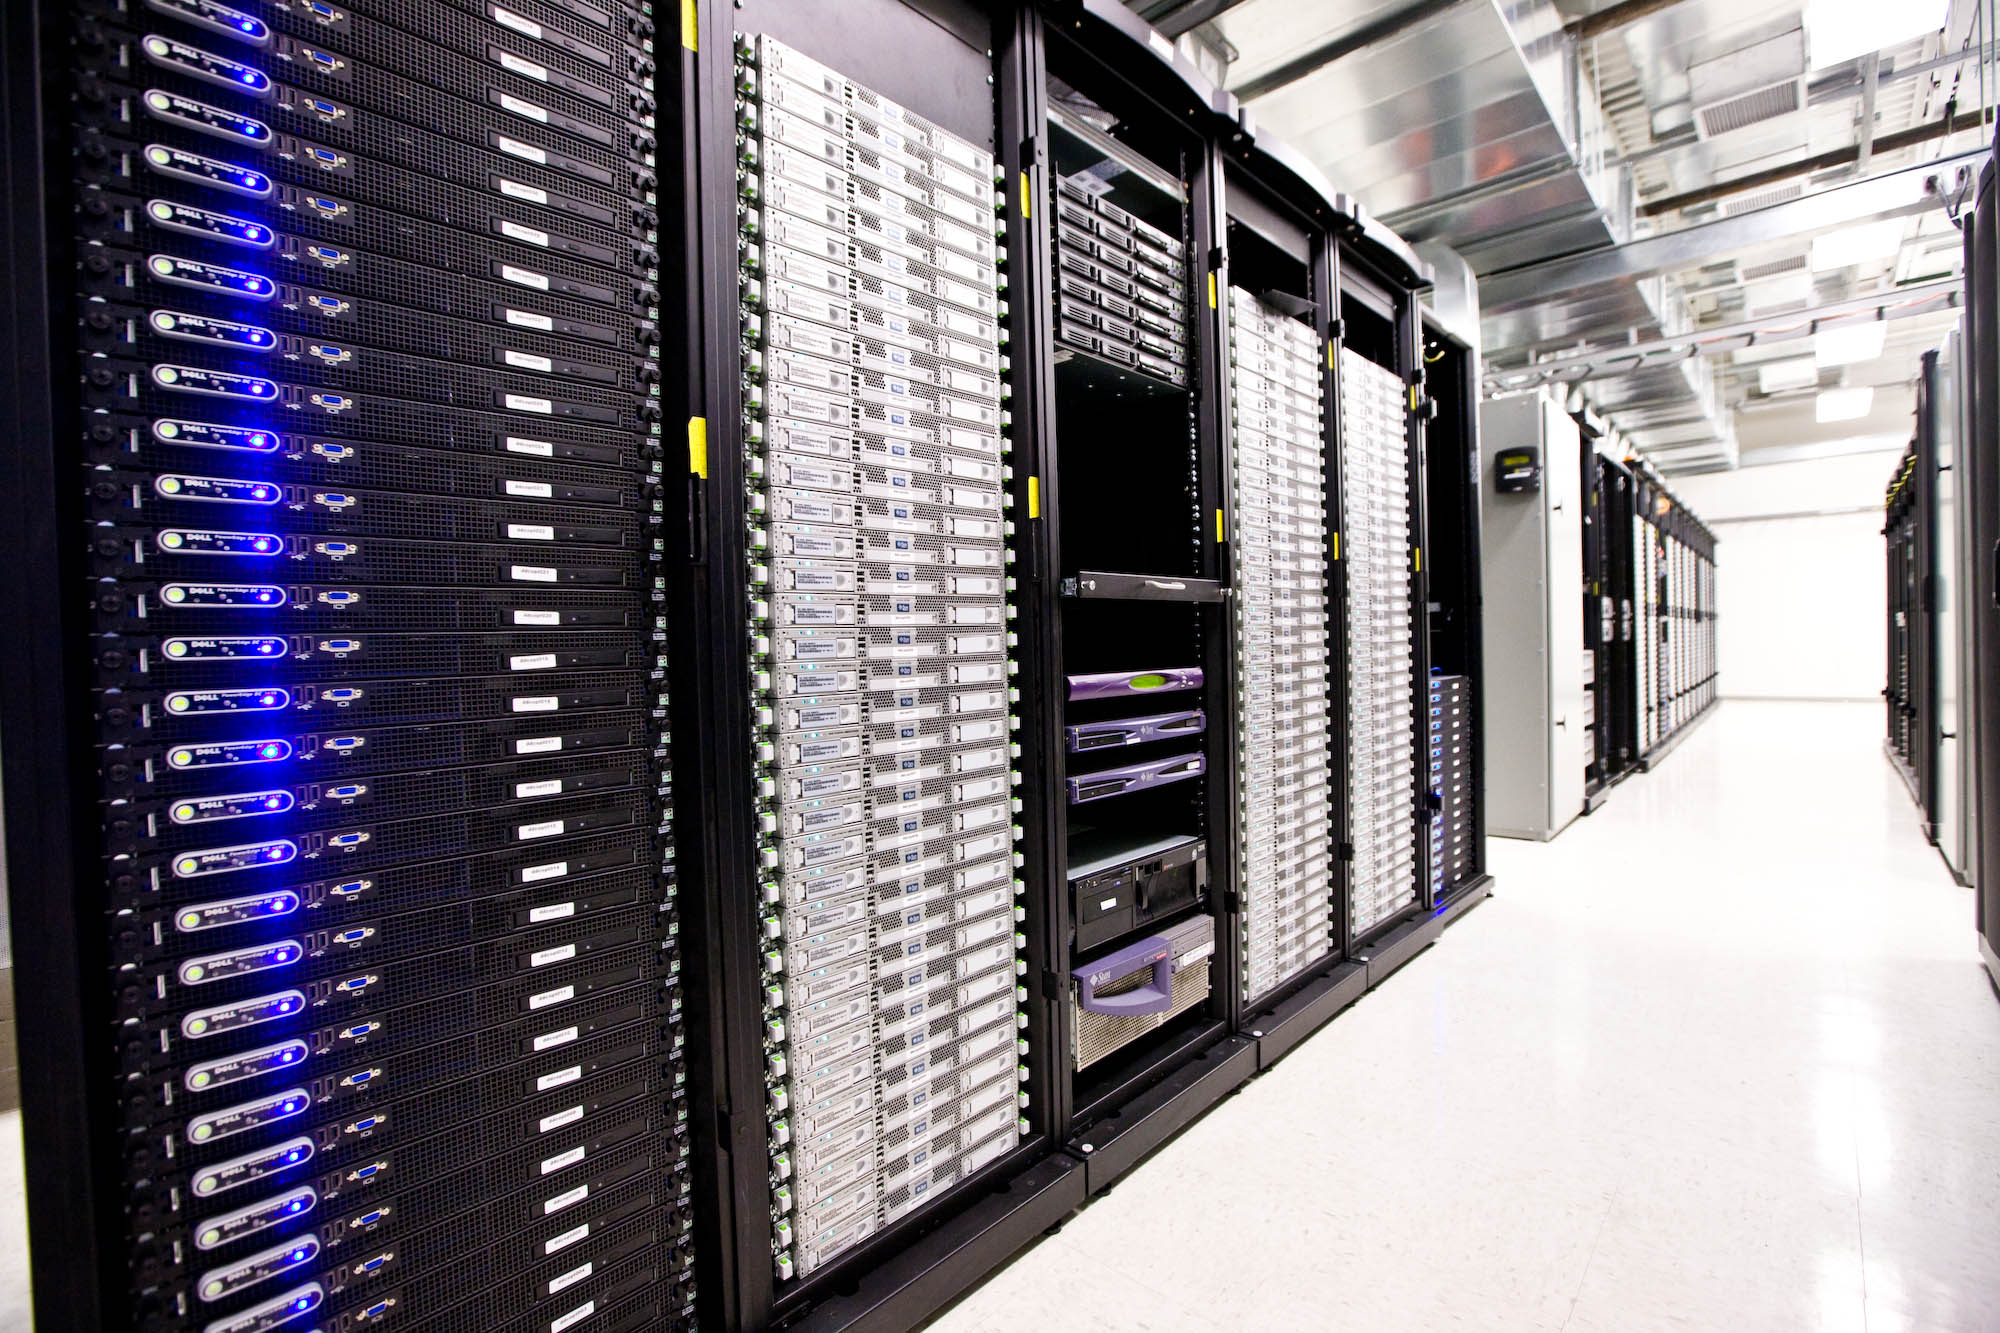 Optimising performance and security of Internet infrastructure